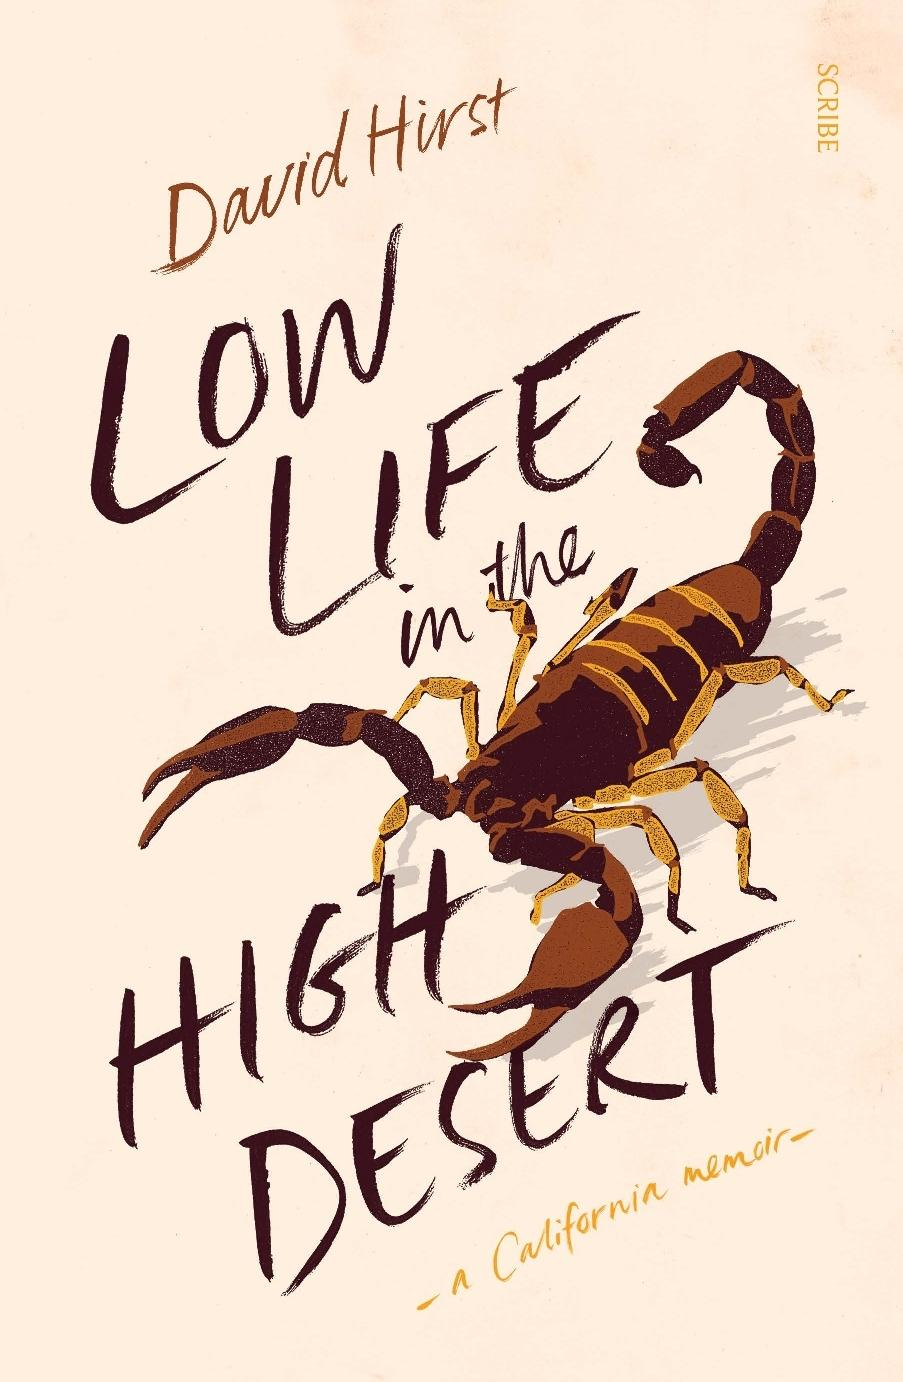 Low Life in the High Desert: a California memoir